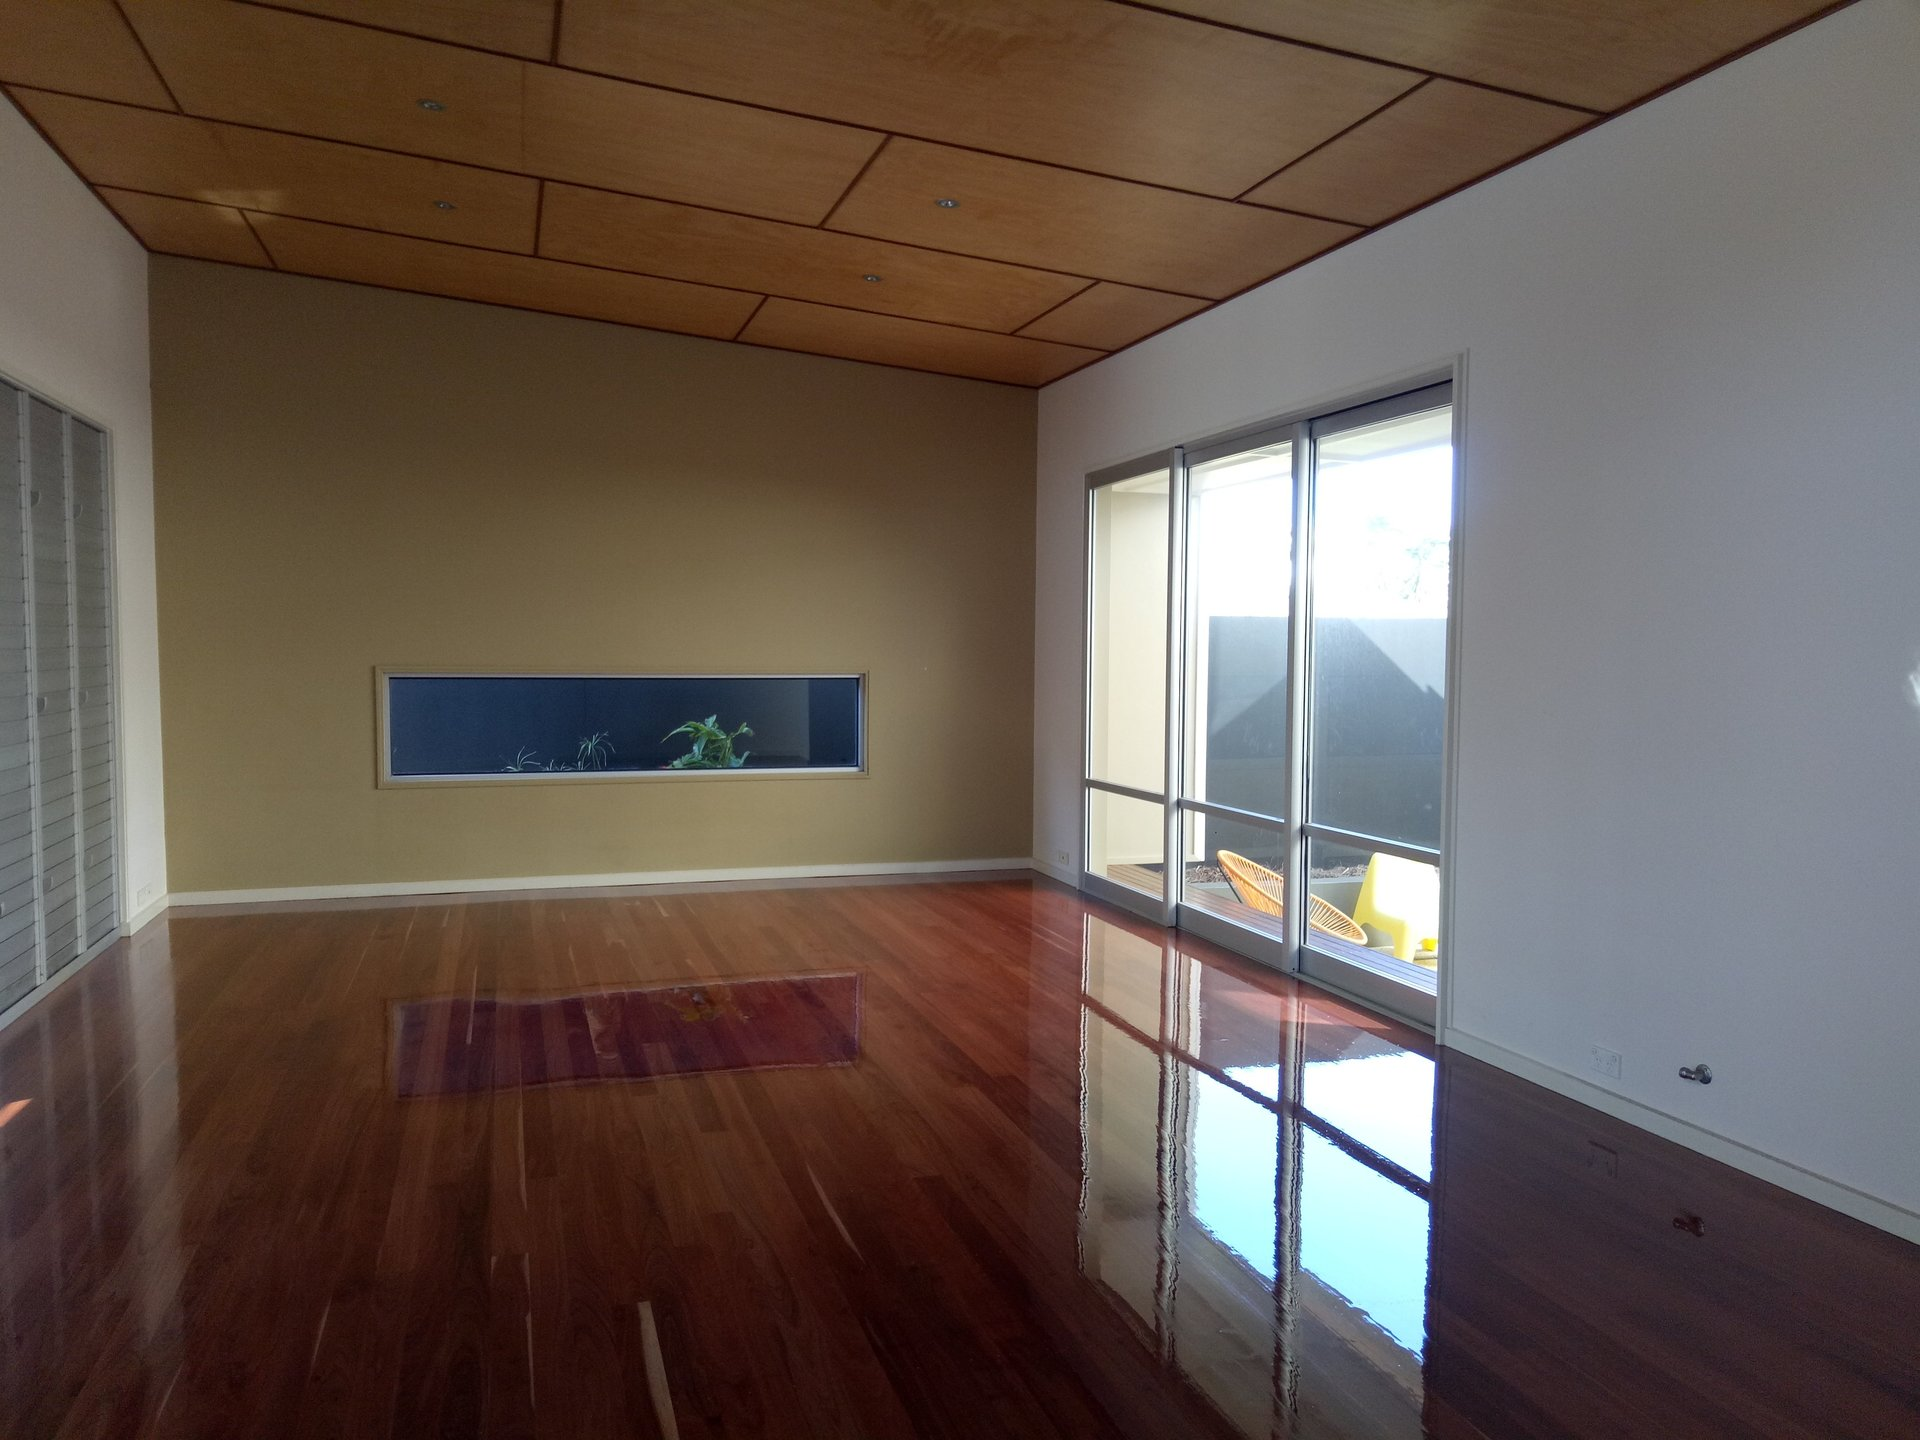 View of a room with timber flooring